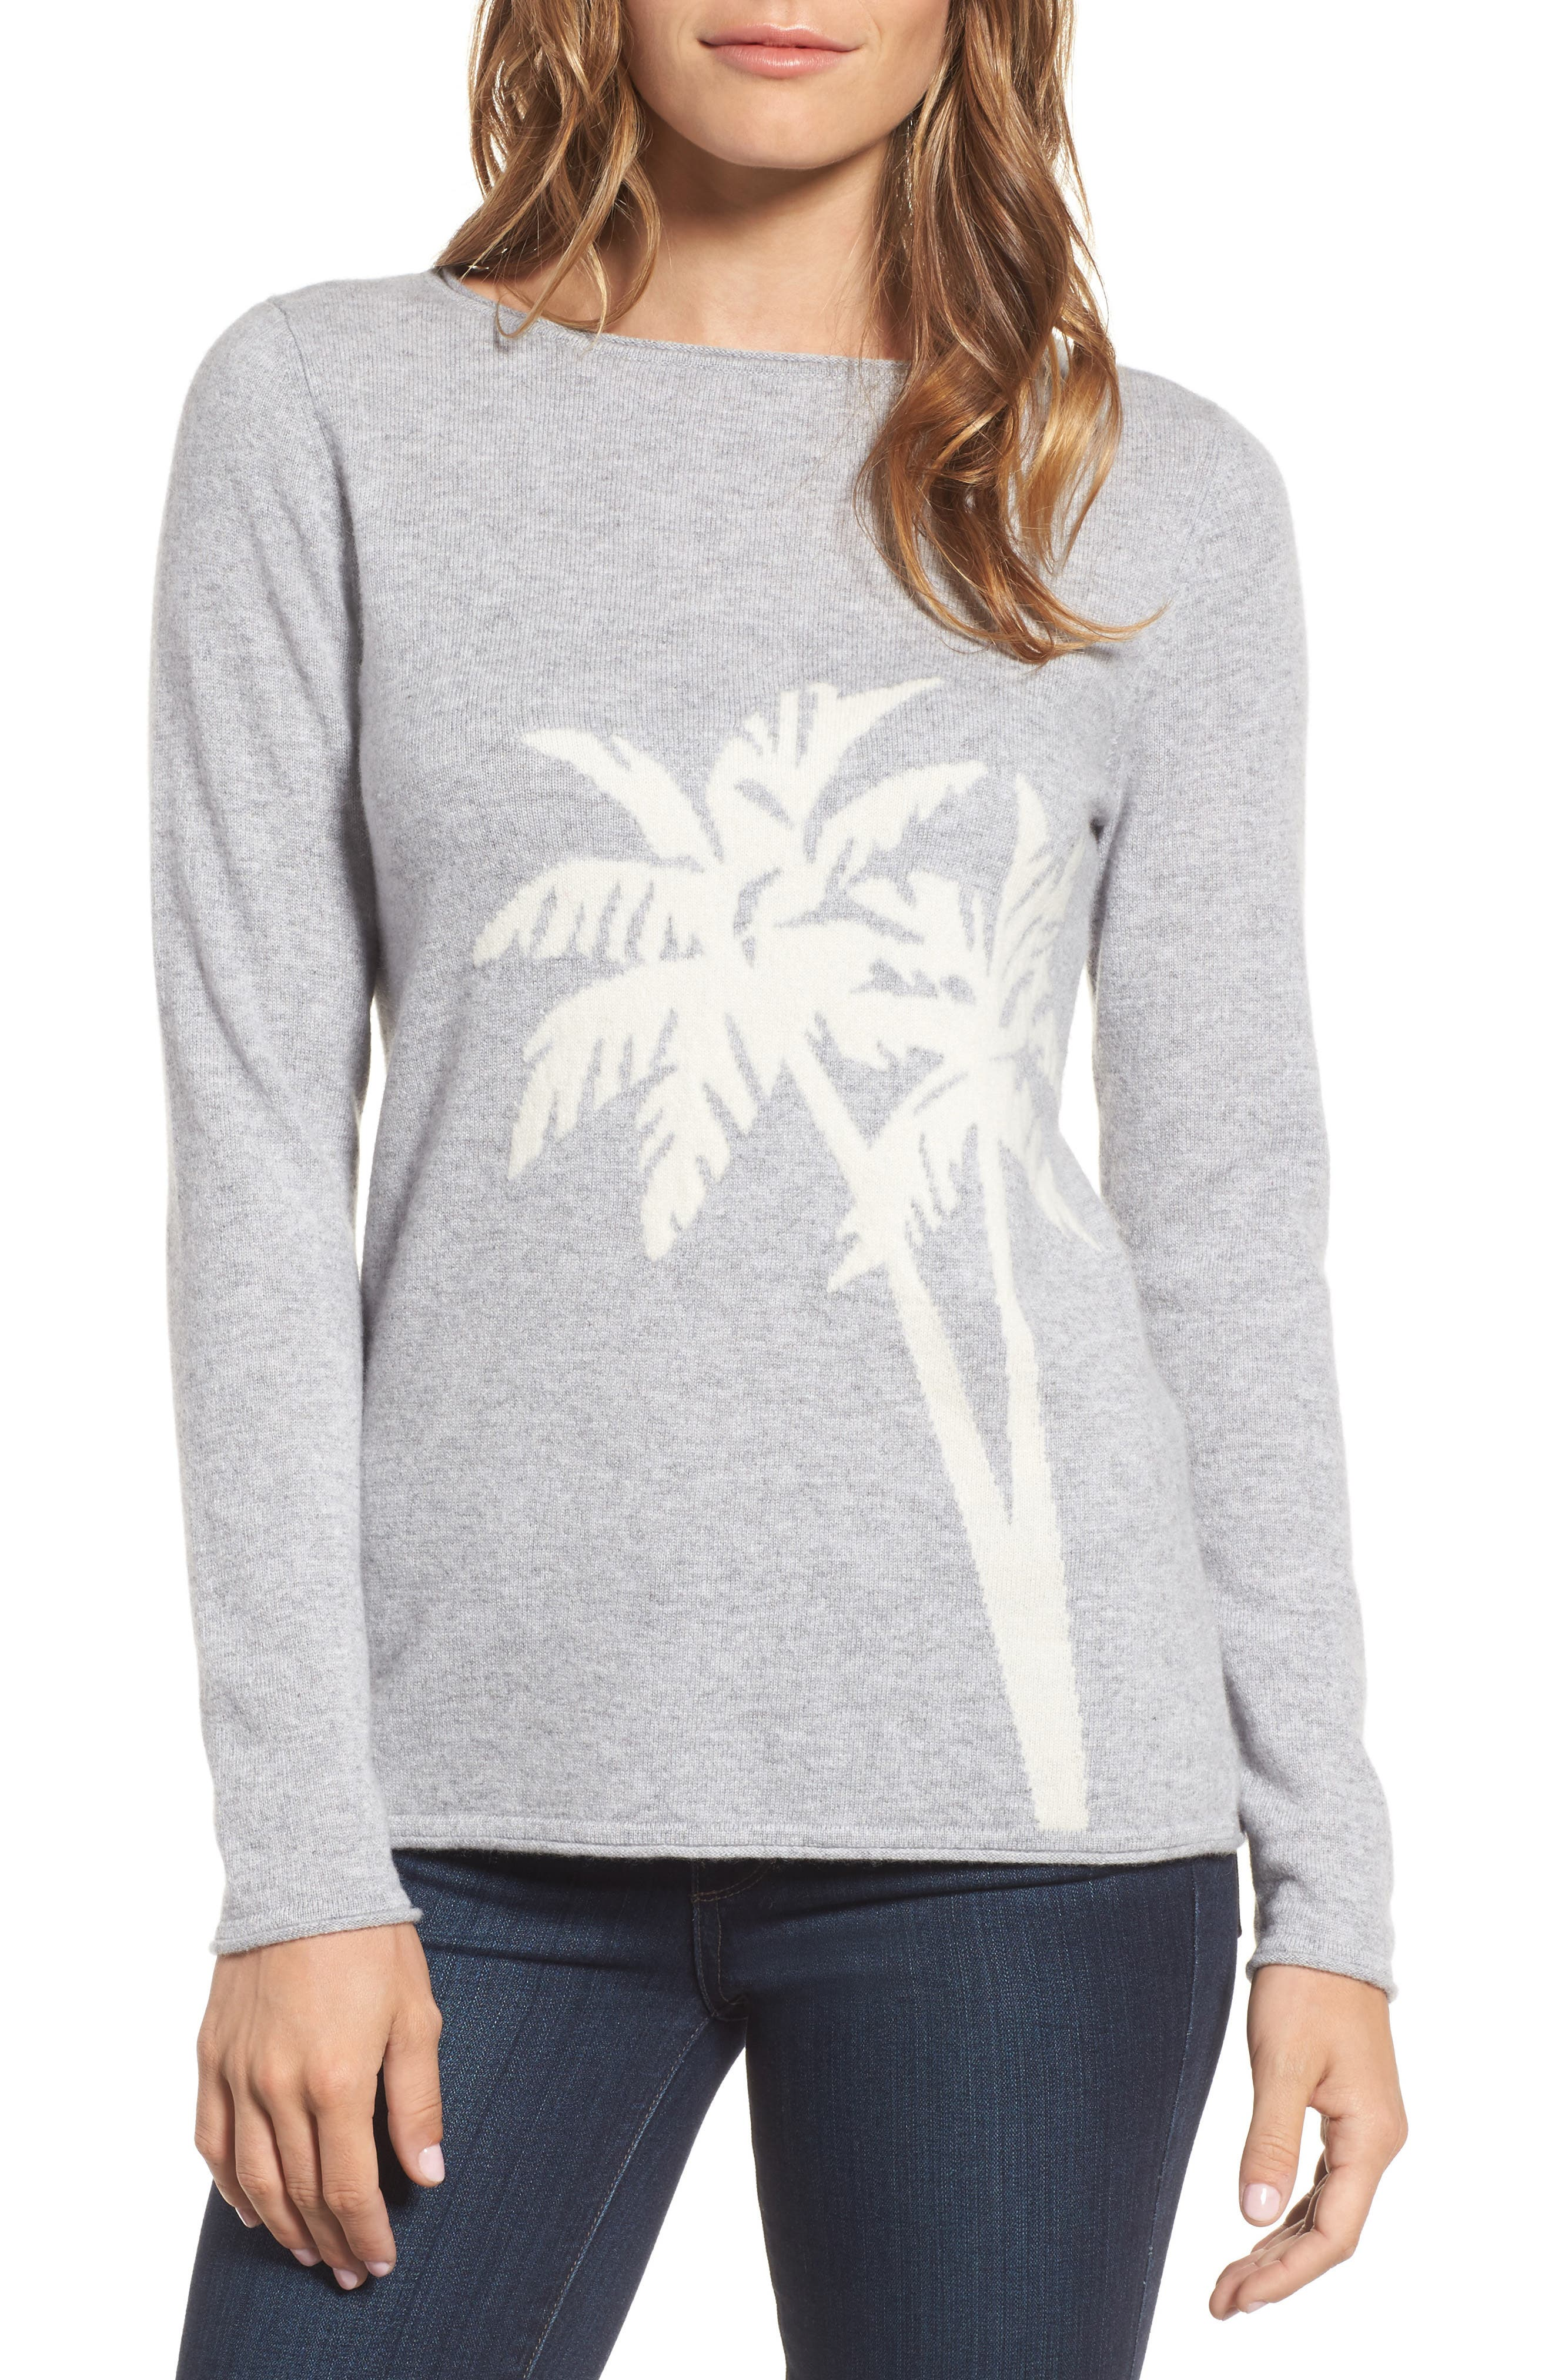 Island Palm Intarsia Cashmere Pullover,                             Main thumbnail 1, color,                             Light Grey Heather